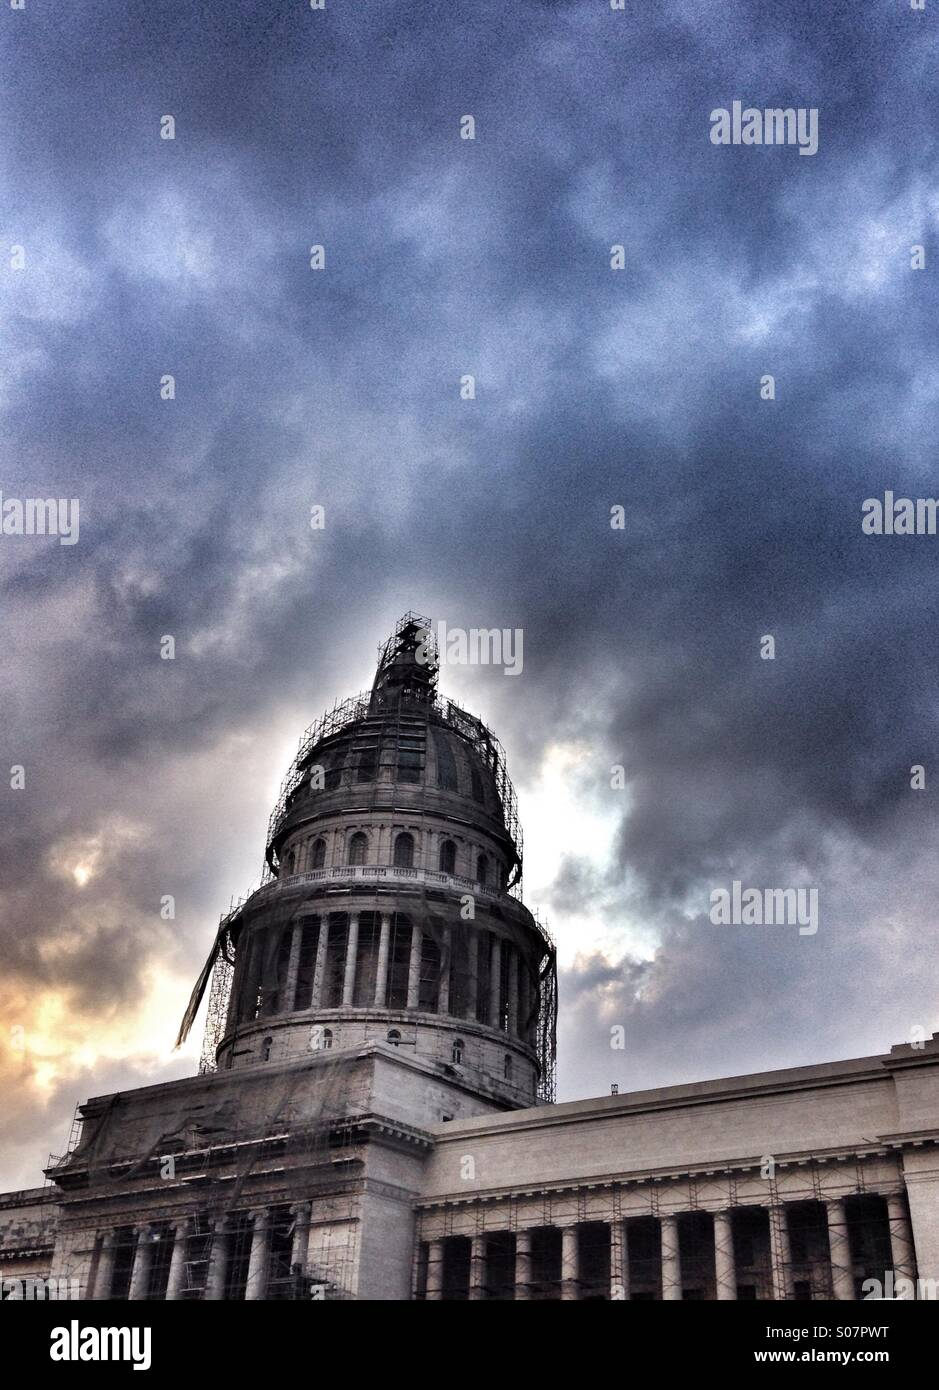 Capitol building under scaffolding, Havana, Cuba. Low angle dramatic brooding sky background. - Stock Image